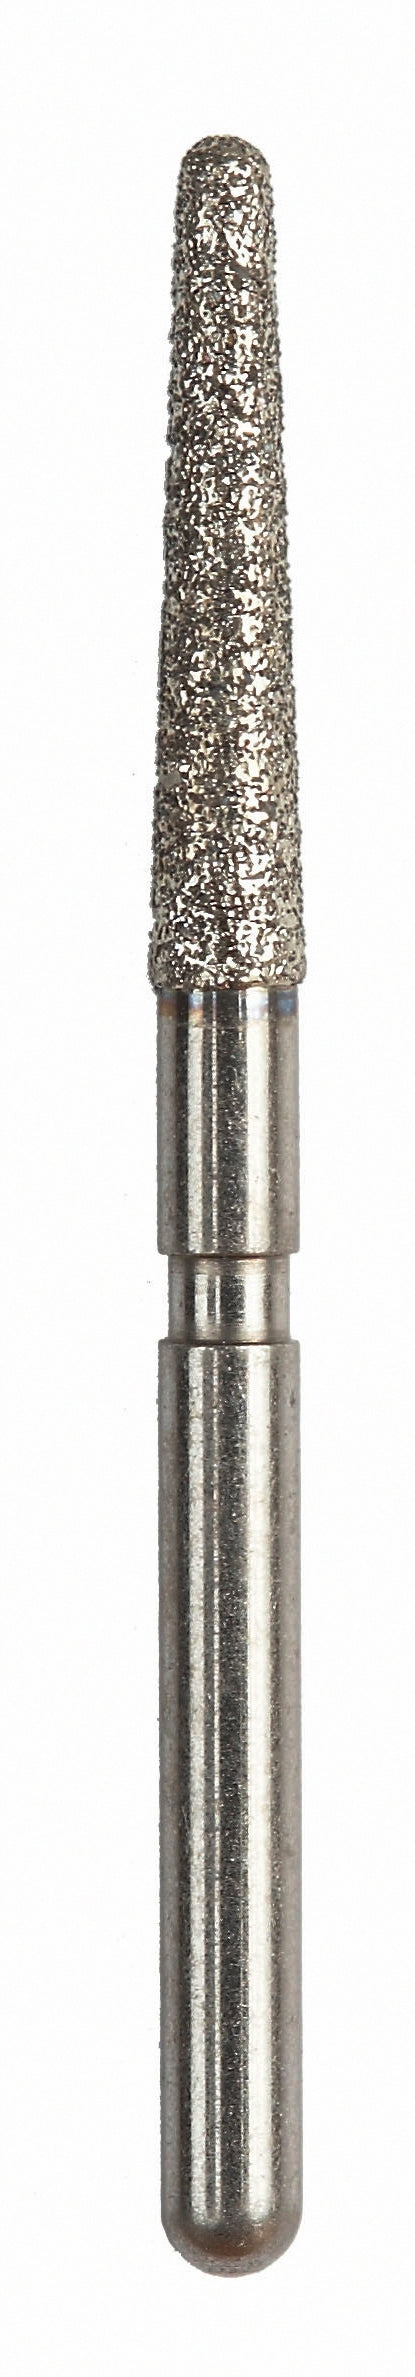 850018 Medium-Round End Taper-Diamond Coated (Pack of 6)